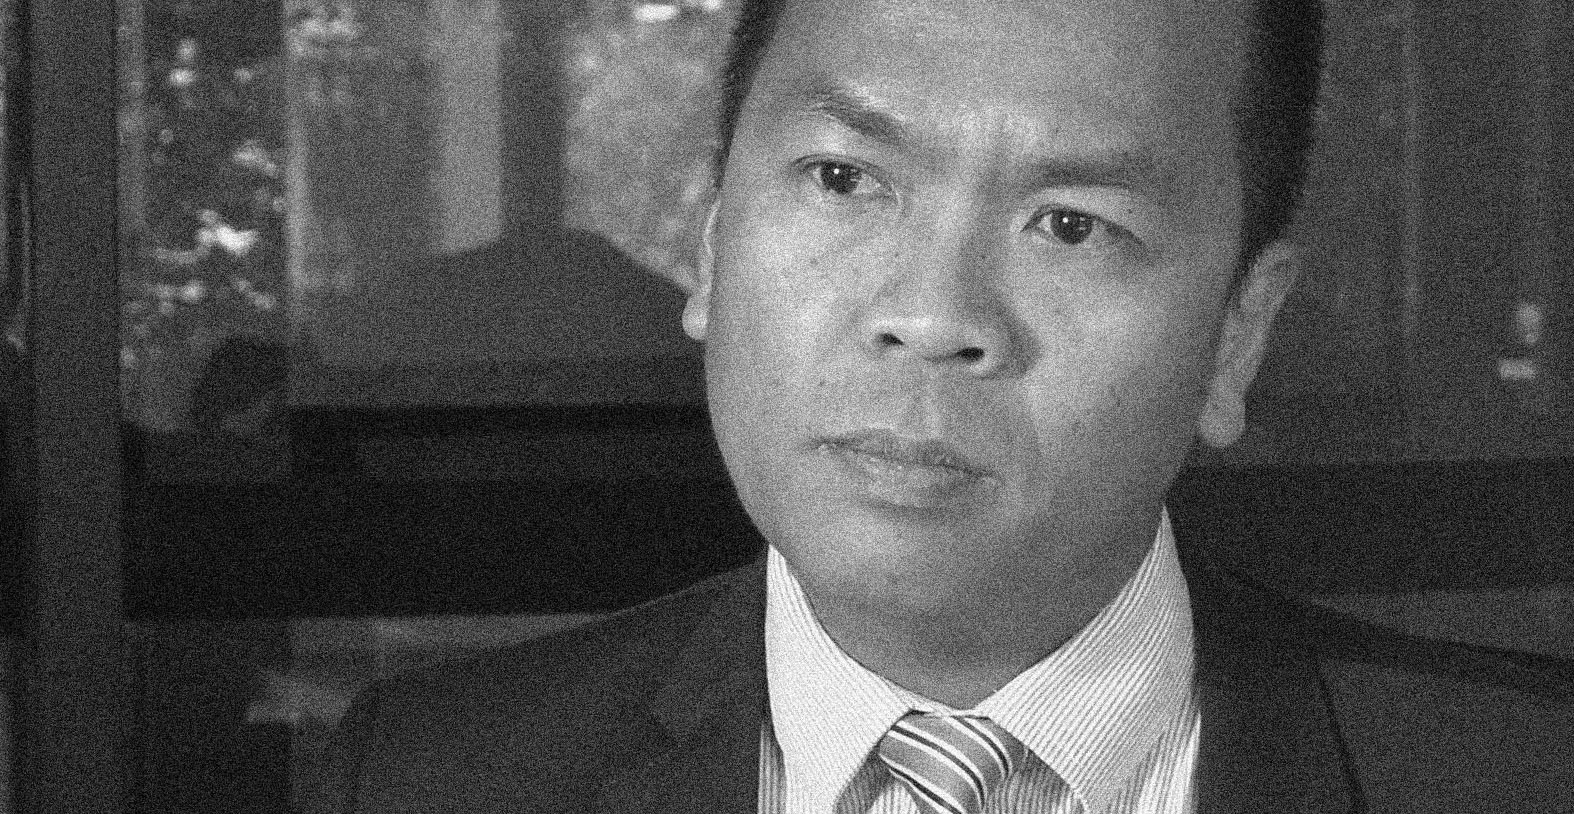 Adam Ly is a traffic and criminal defence specialist with 20 years experience